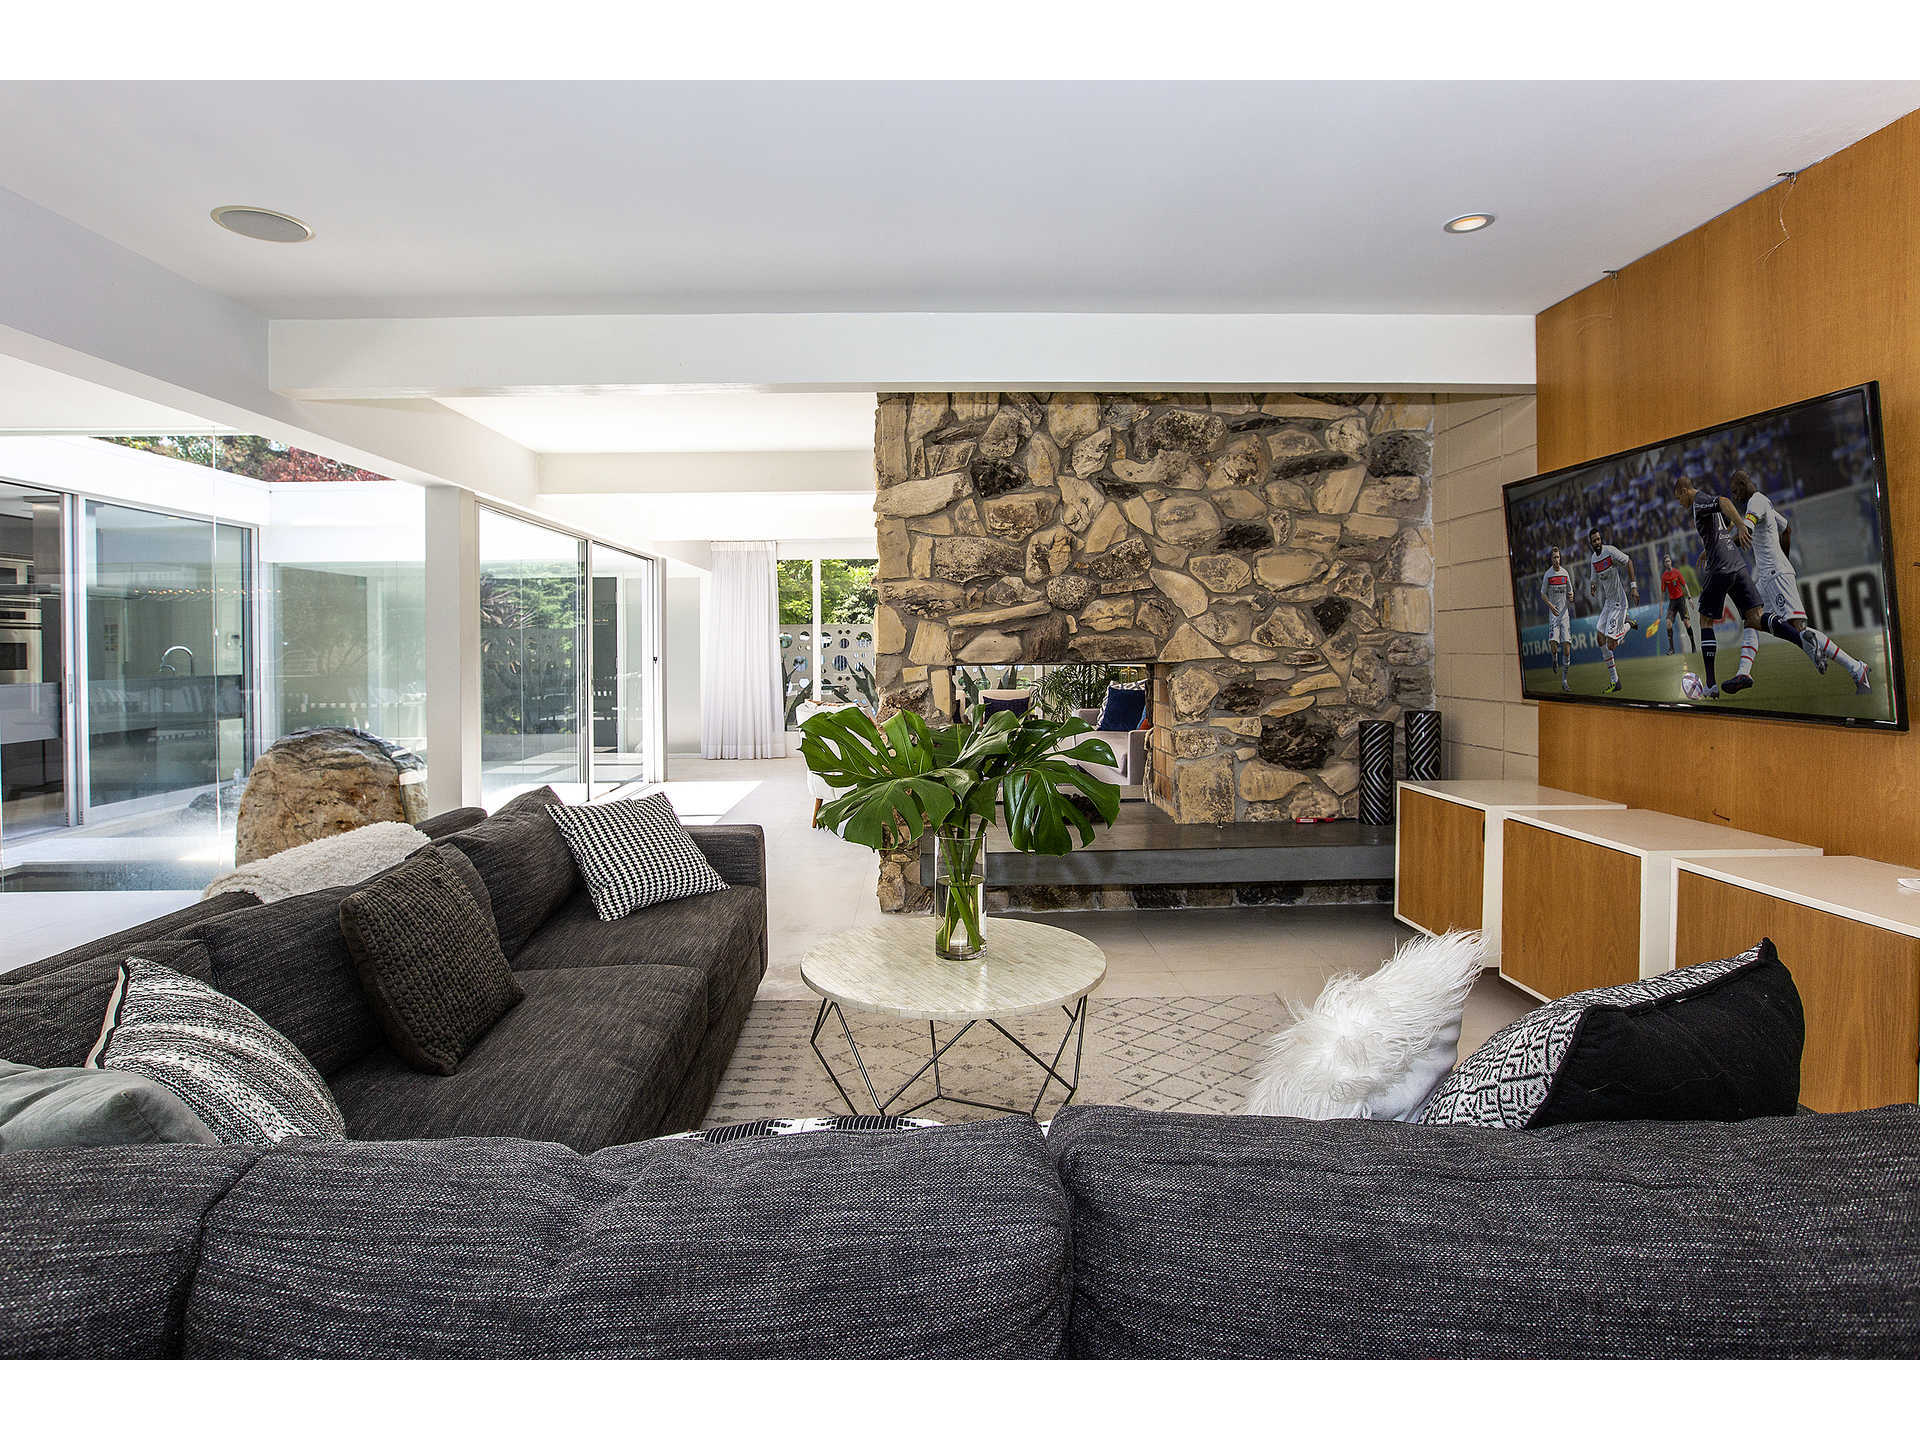 1959 midcentury home in Los Angeles - living room relax area